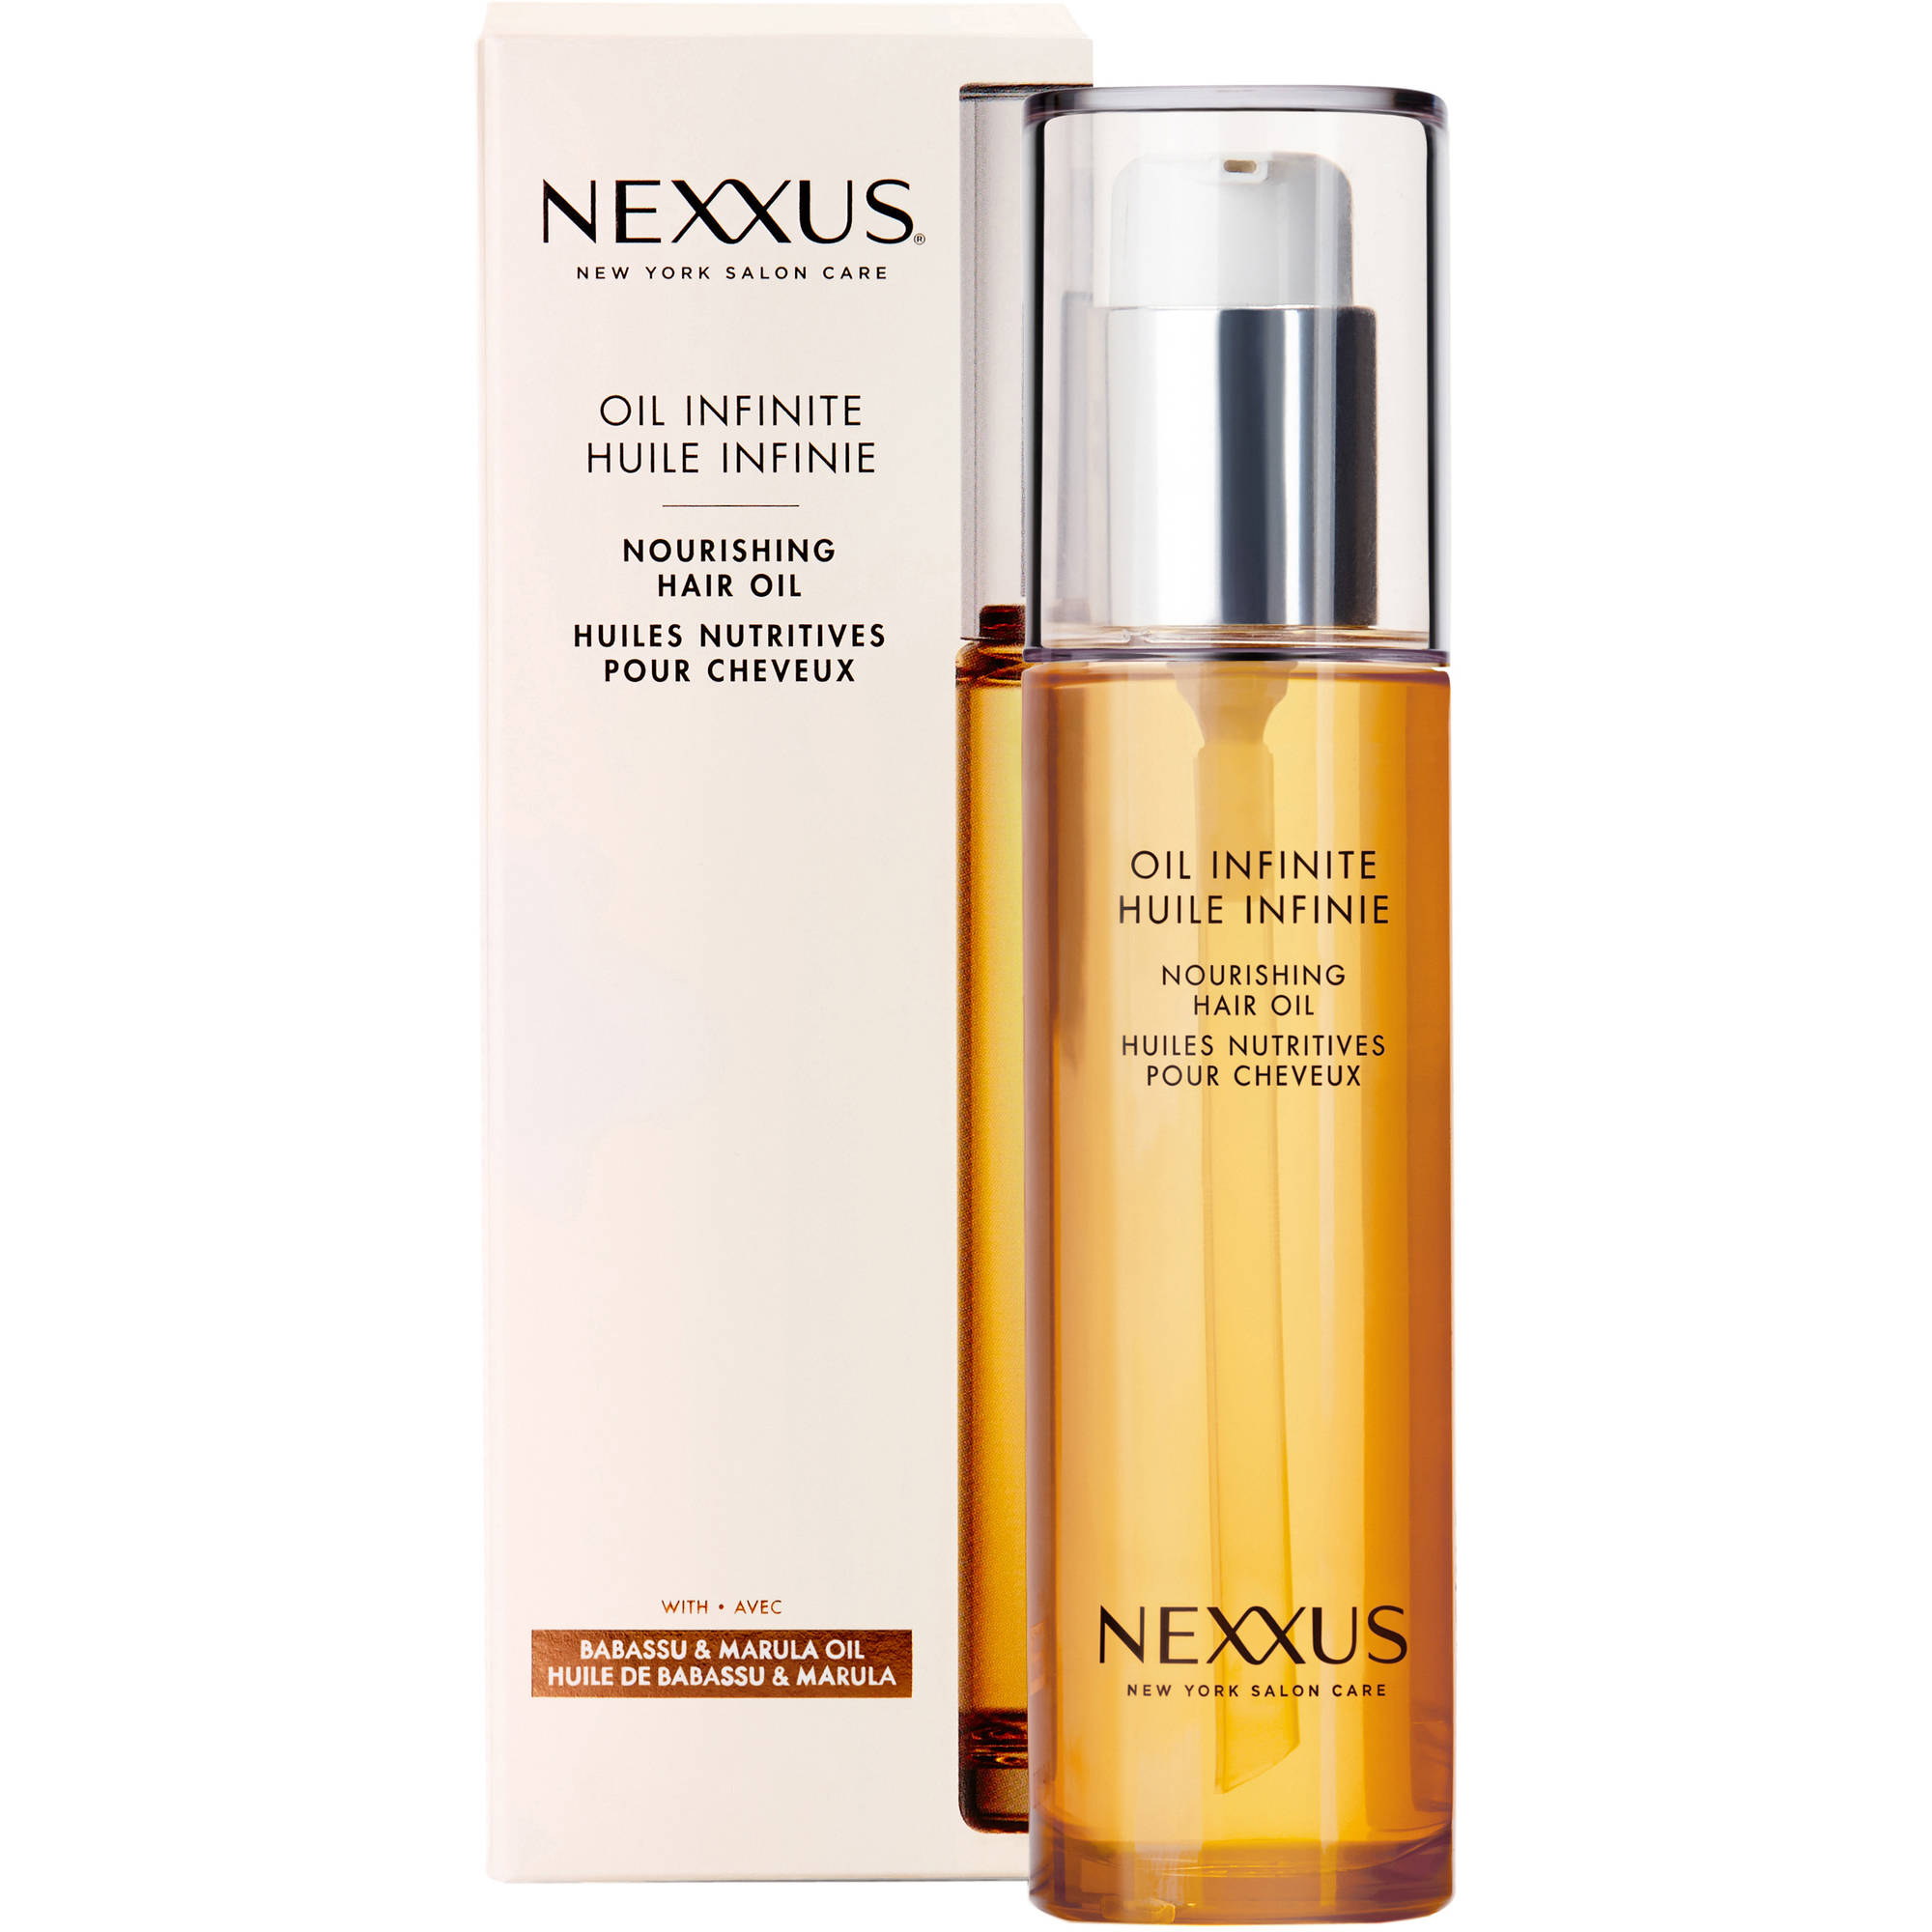 Nexxus Oil Infinite Nourishing Hair Oil Treatment, 3.3 oz